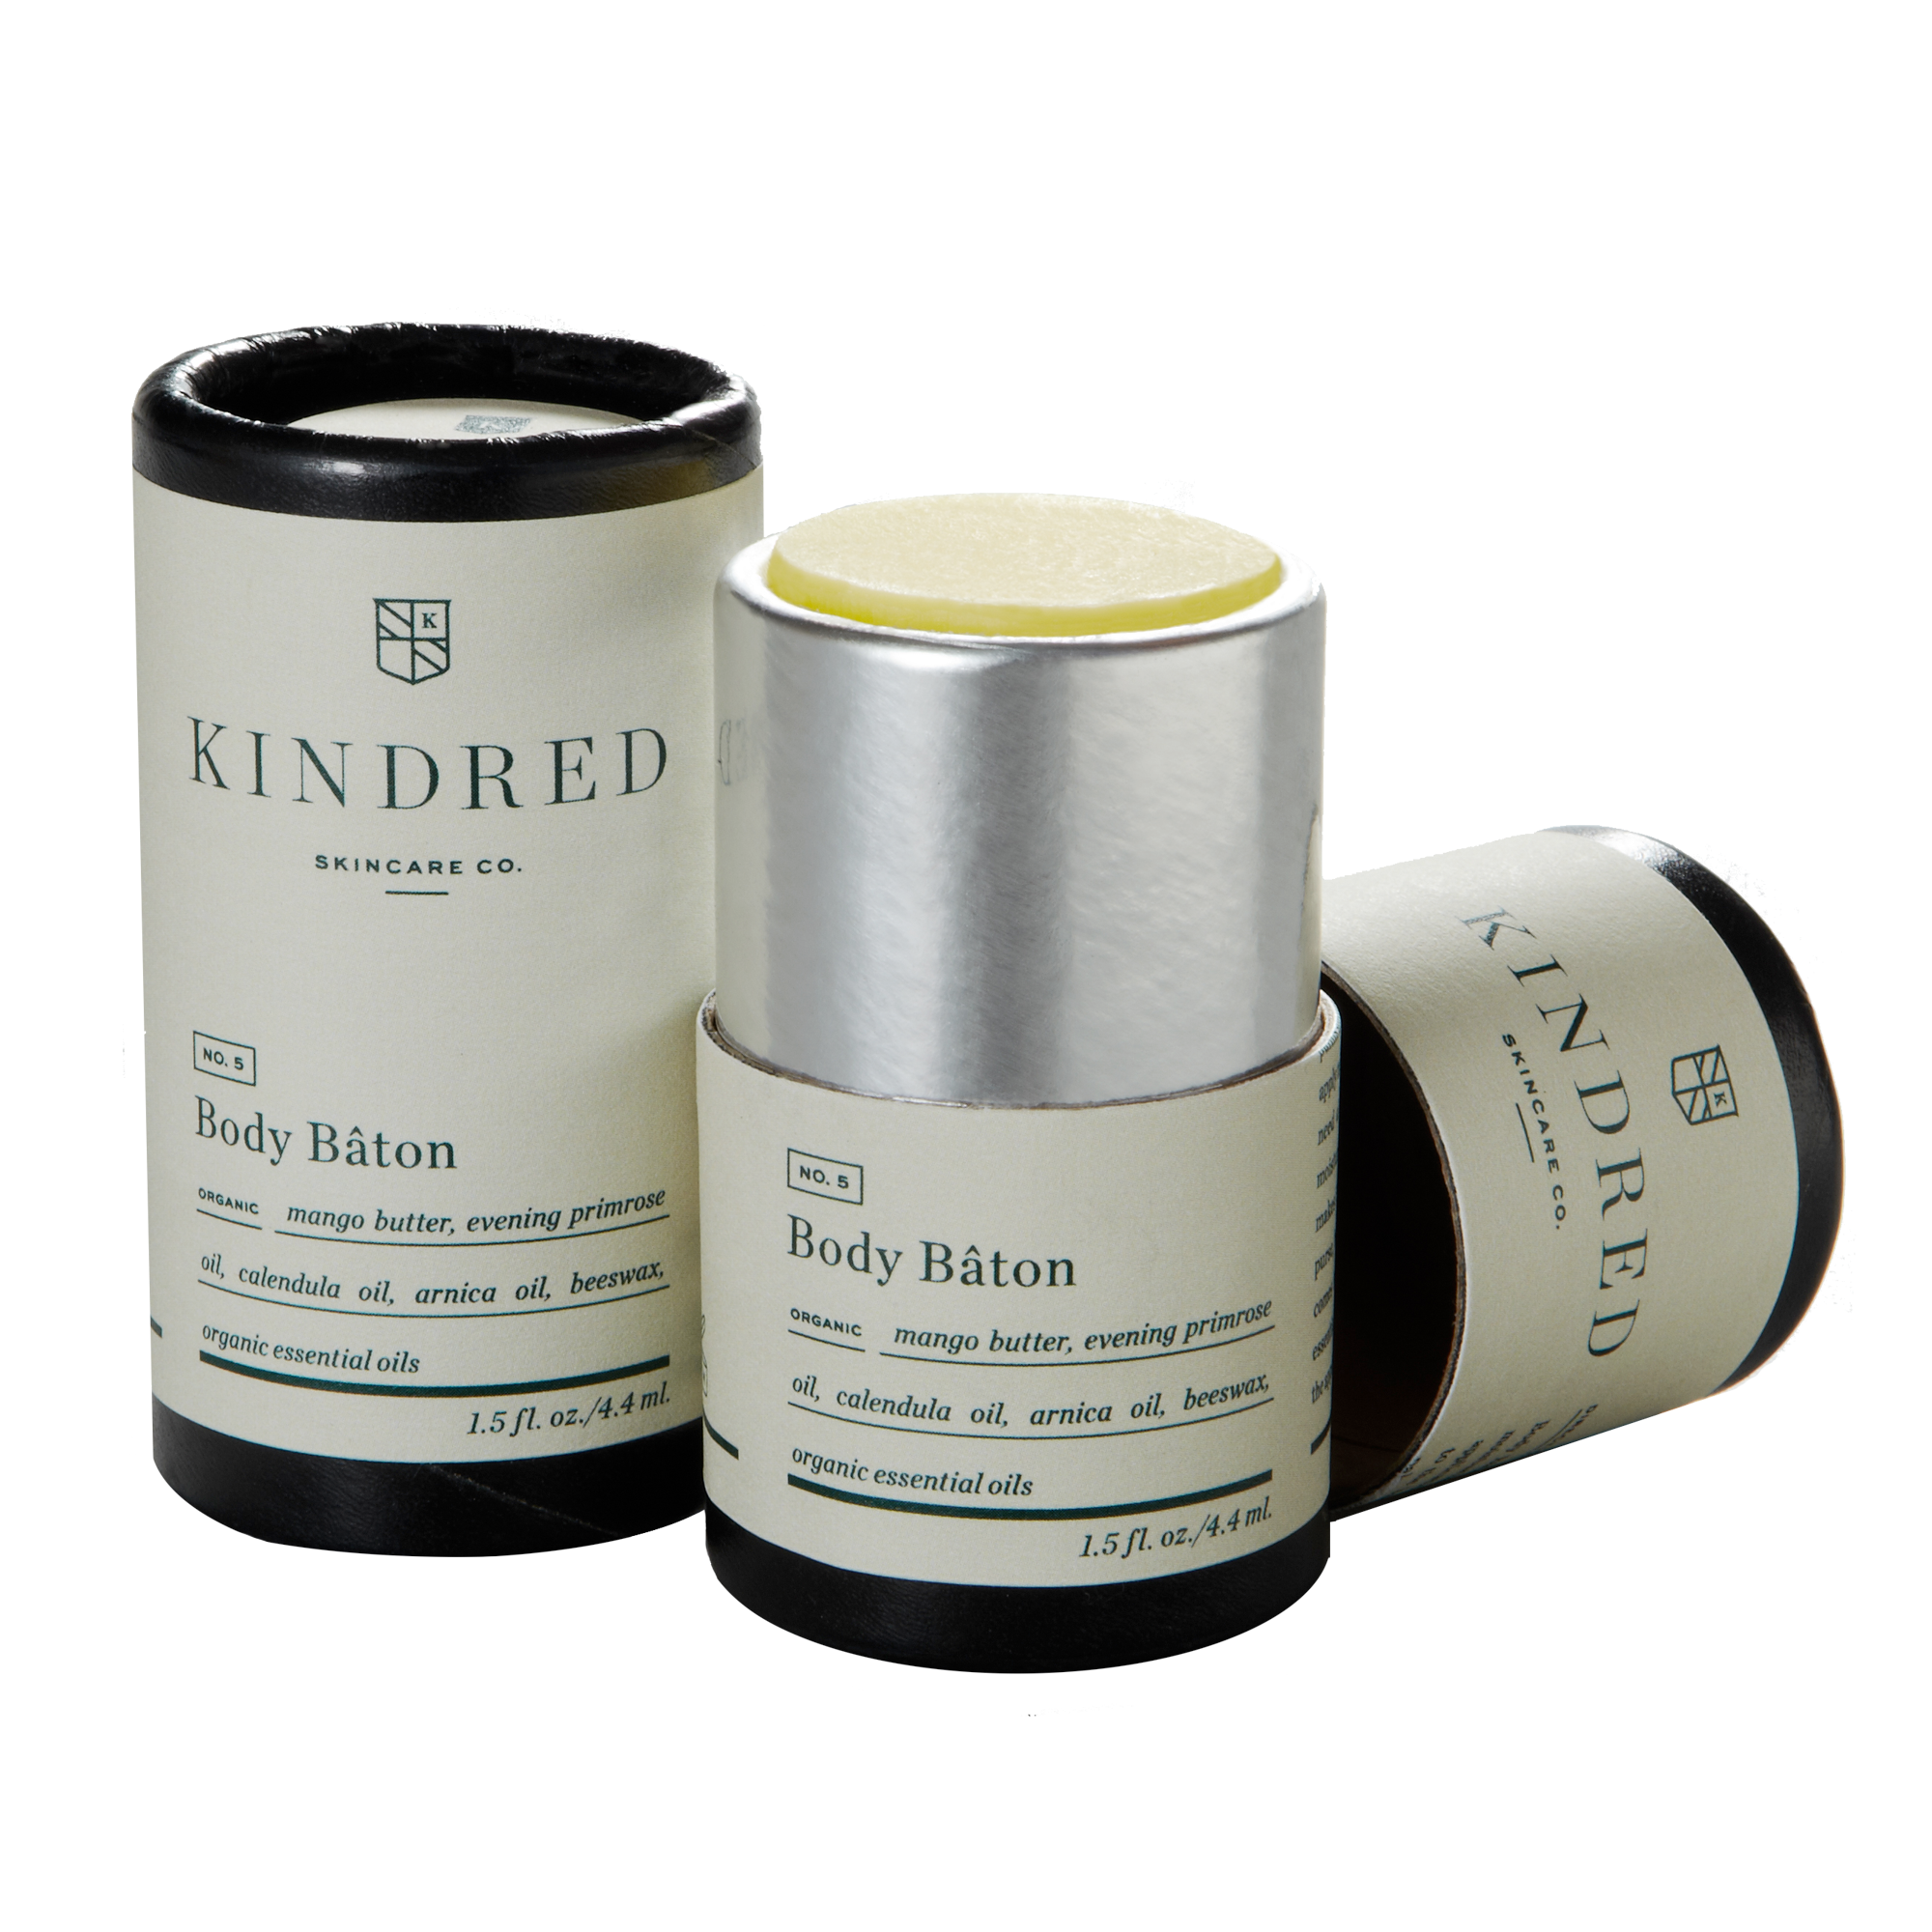 Kindred Skincare Co. Body Bâton